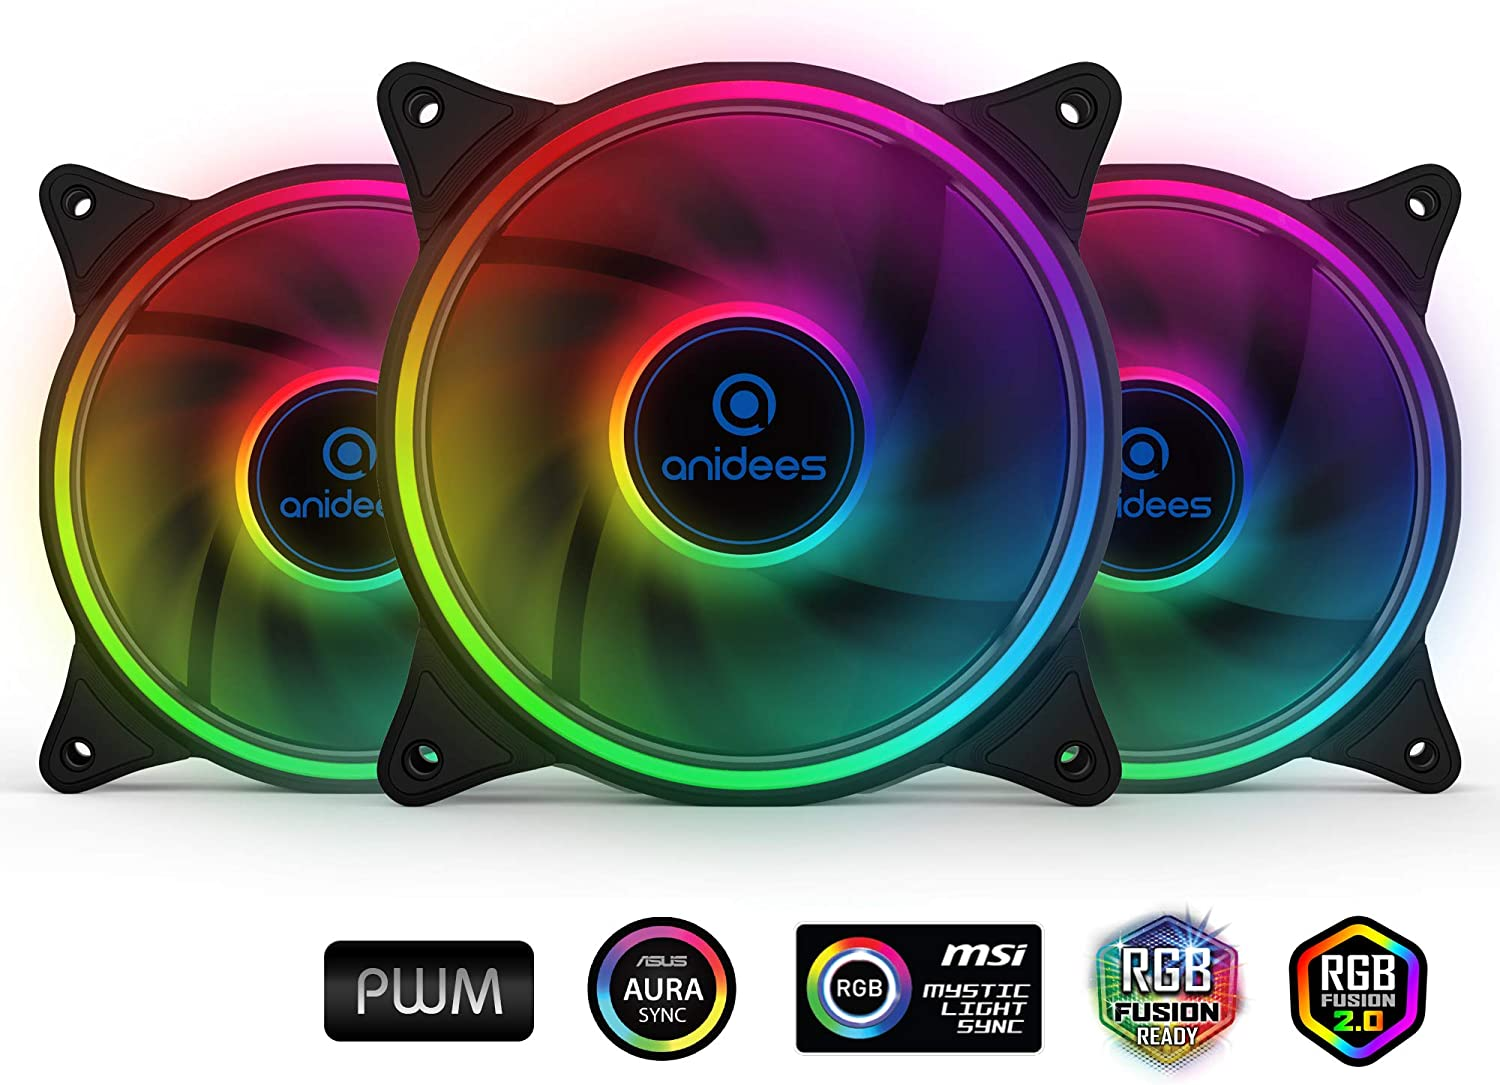 anidees AI Tesseract 120mm 3 pcs 5V Addressable RGB PWM Fan,Wireless Remote Control or from ARGB Header, for Case Fan, Cooler Fan, with Remote